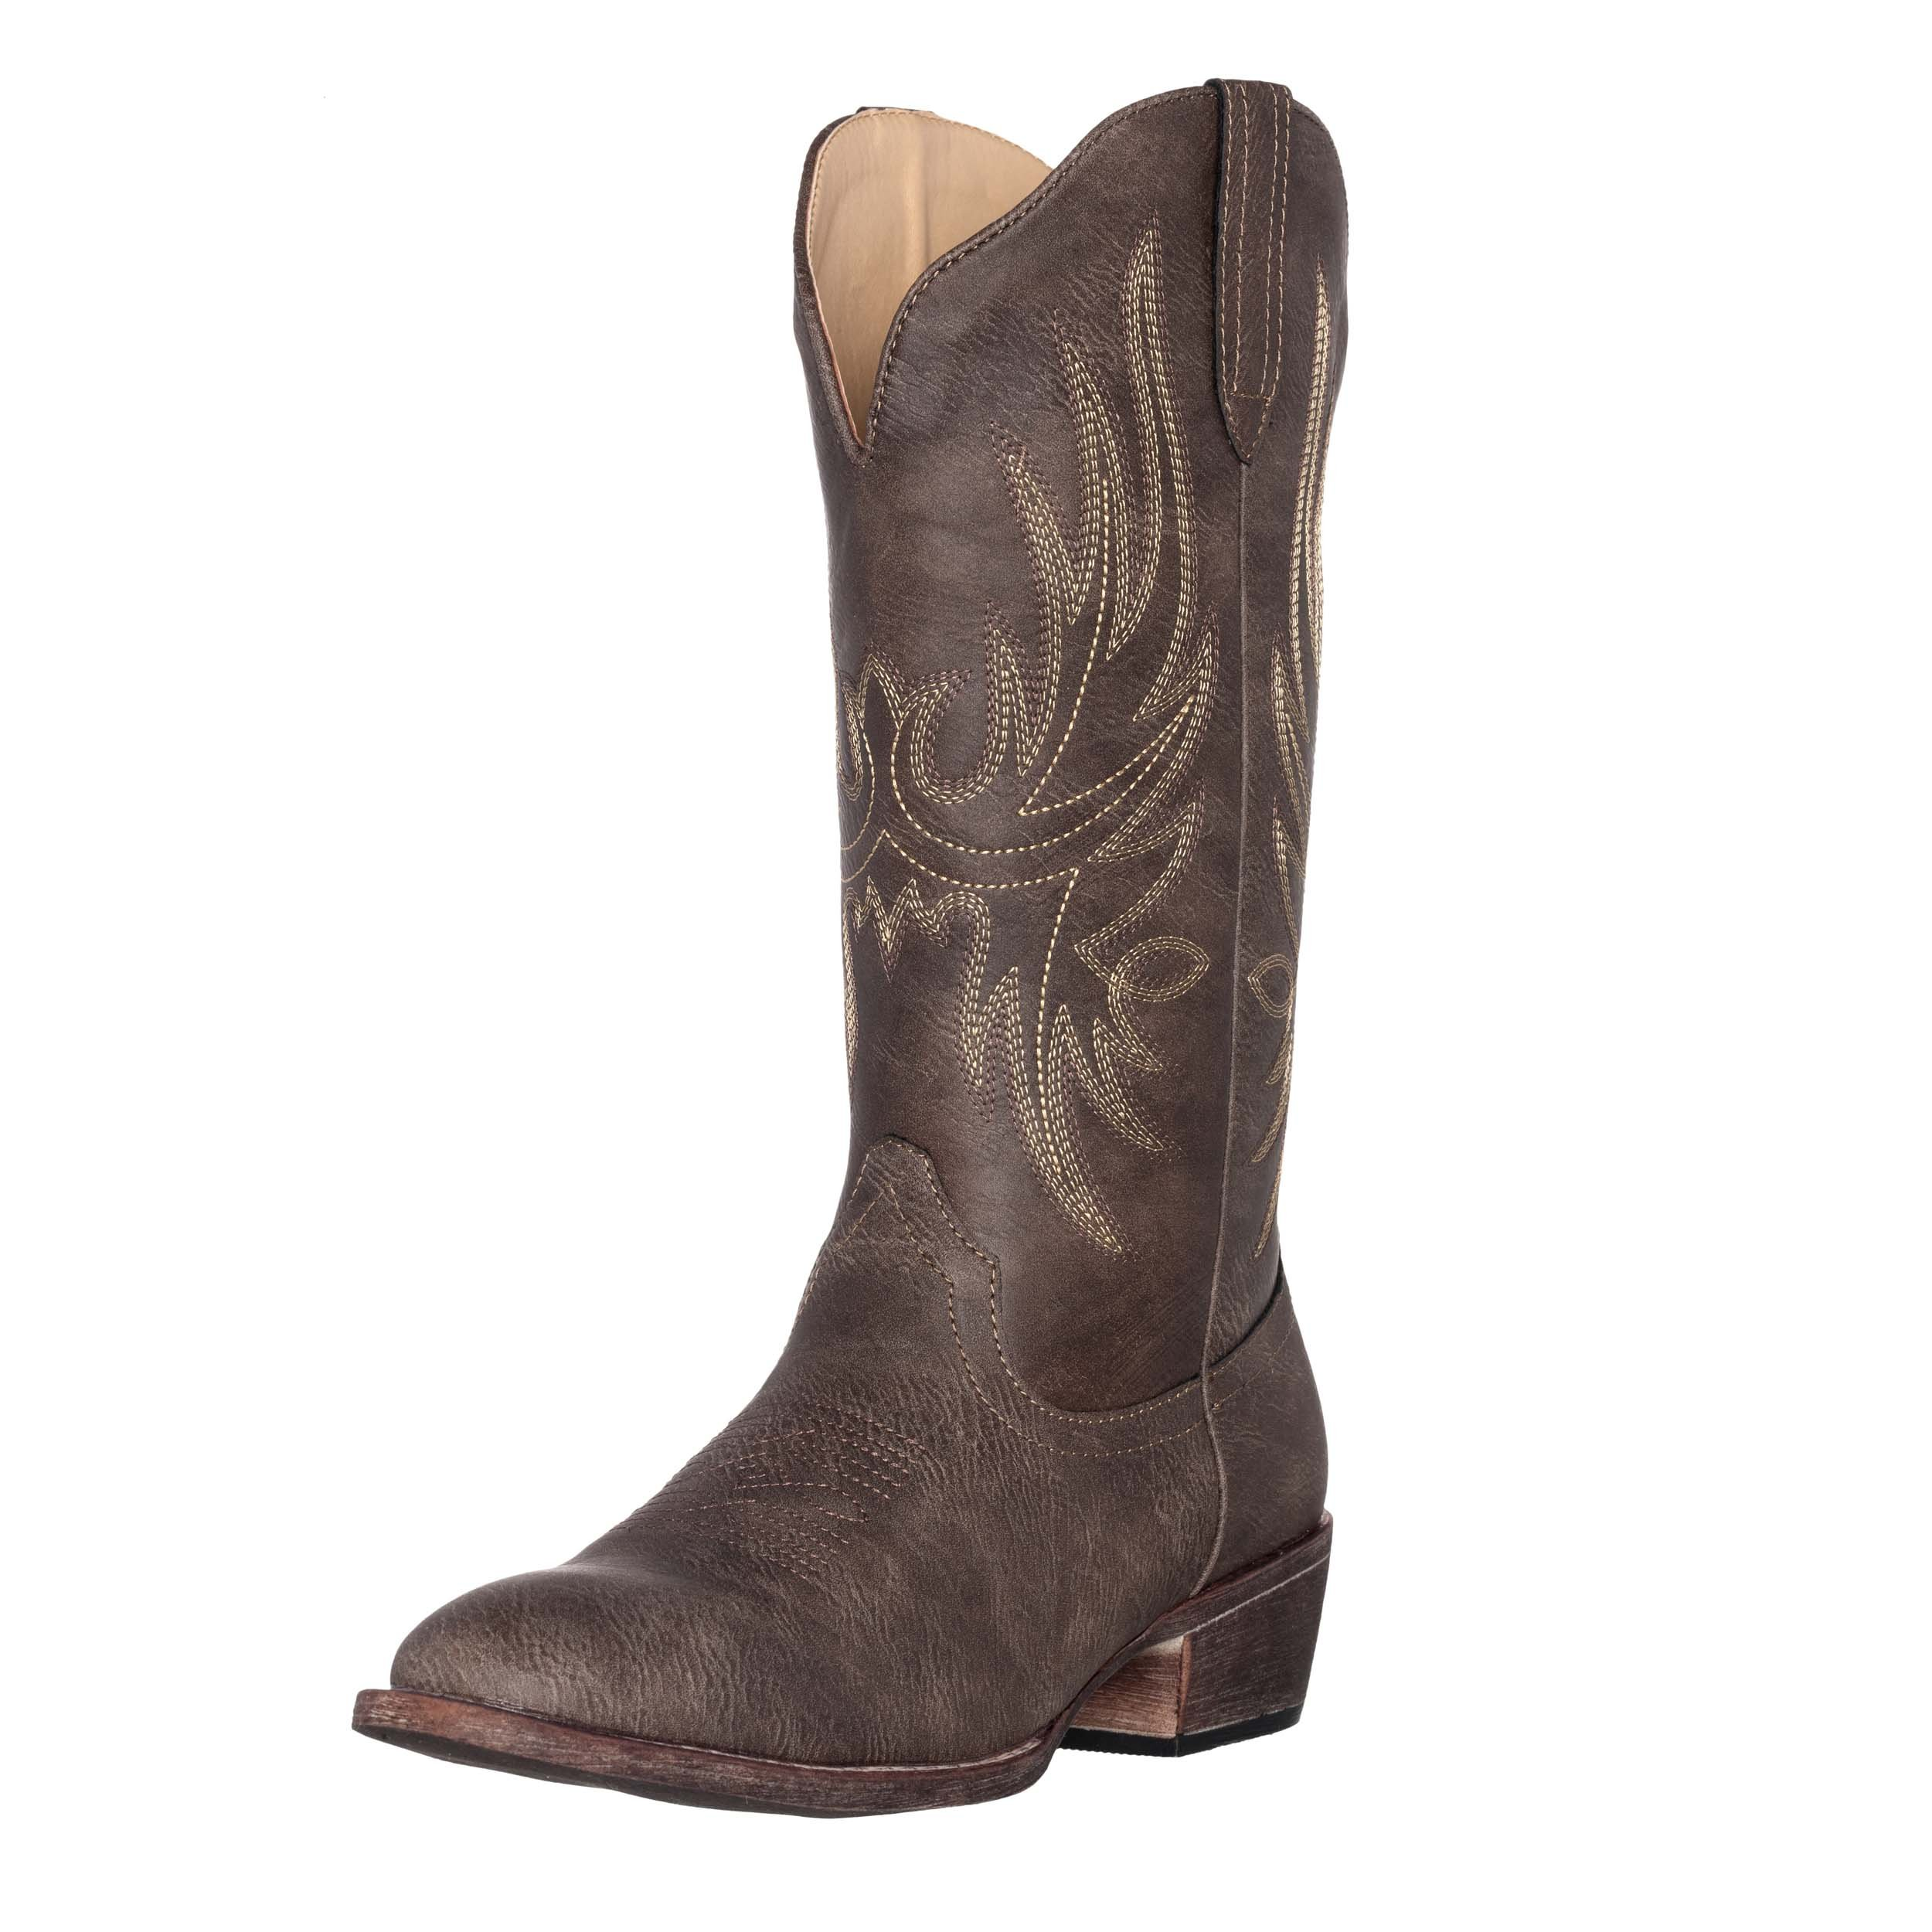 Women's Western Cowgirl Cowboy Boot   Brown Cimmaron Round Toe by Silver Canyon